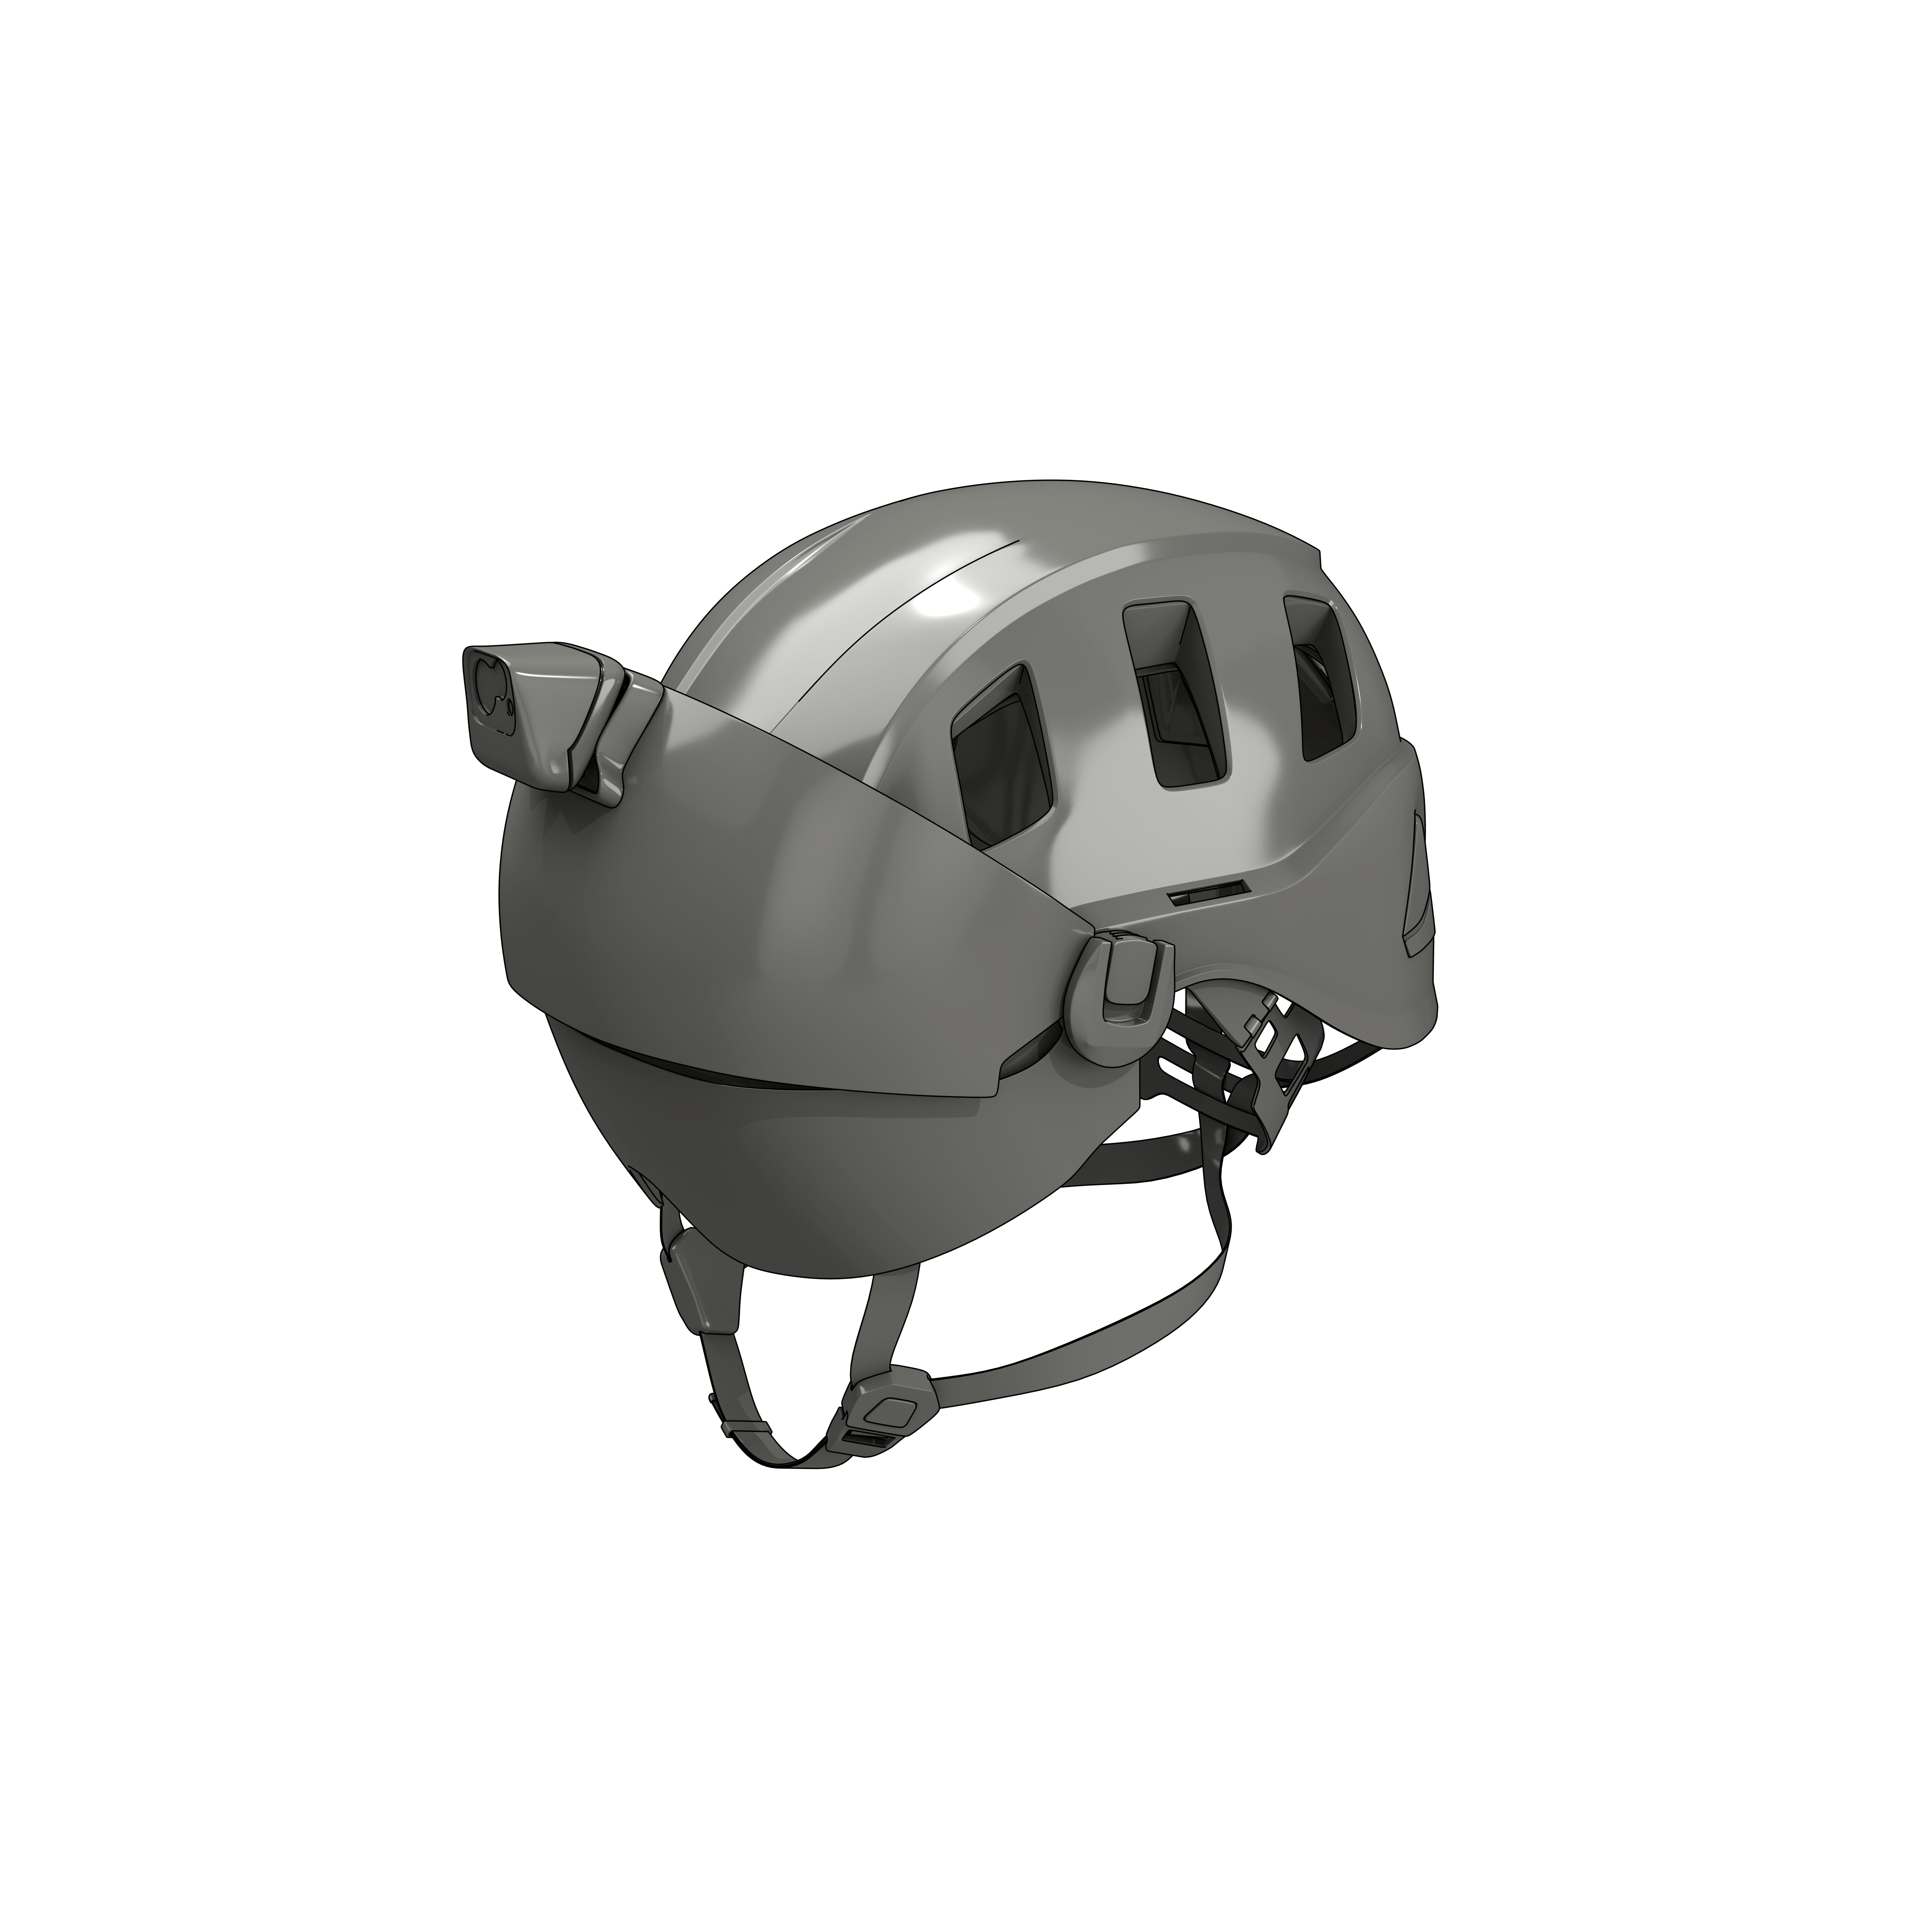 Helmet with Visor and Light